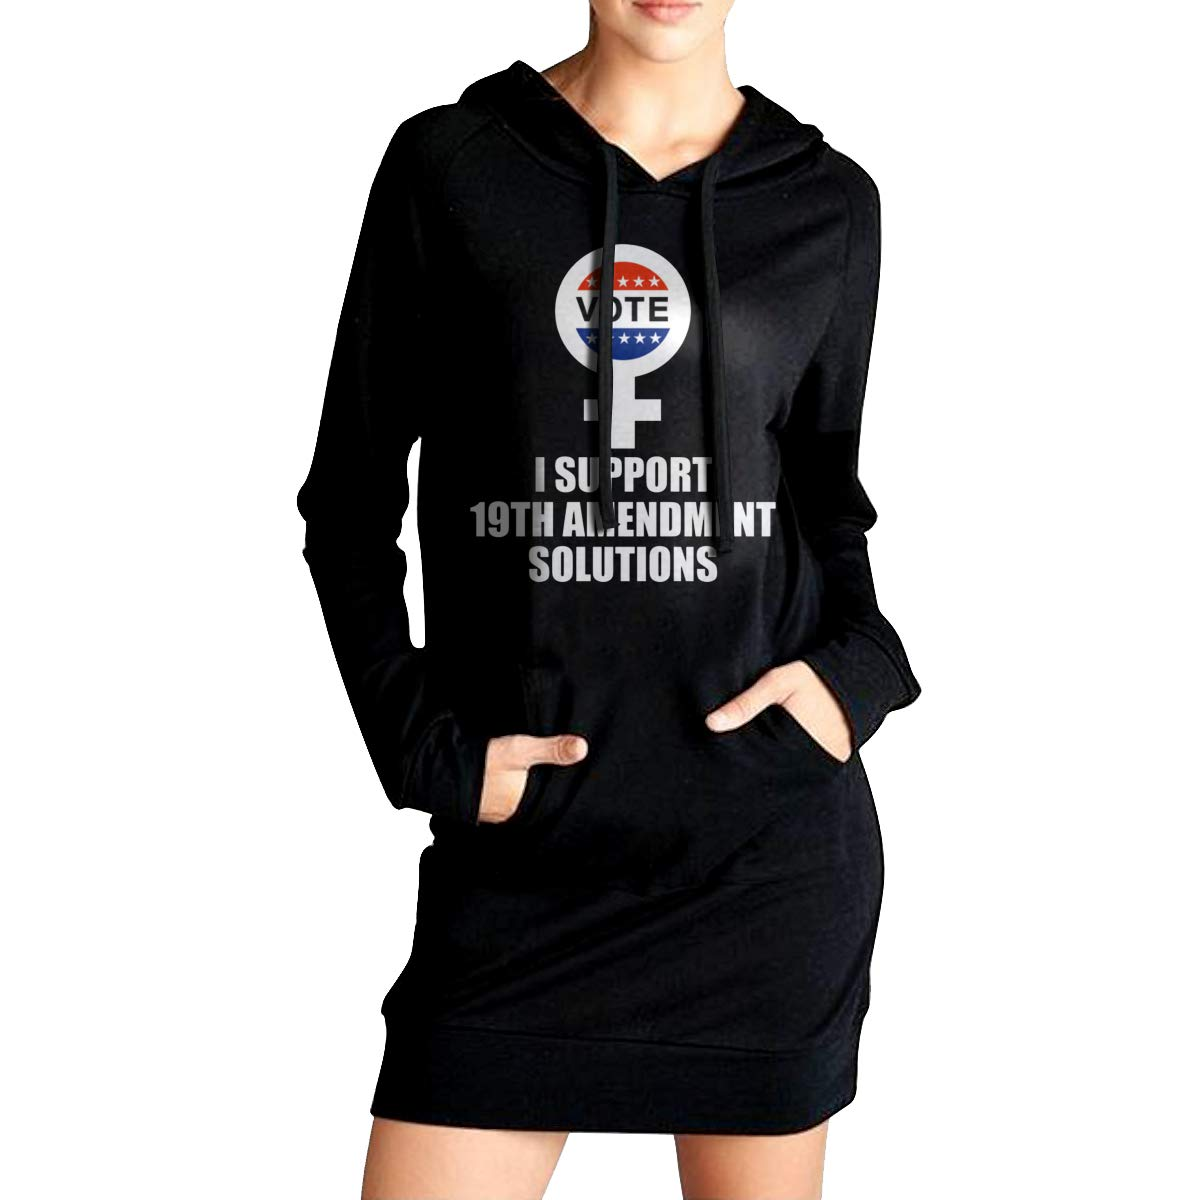 Womens Long Sleeve Hooded I Support 19th Amendment Solutions Loose Casual Pullover Hoodie Dress Tunic Sweatshirt Dress with Pockets